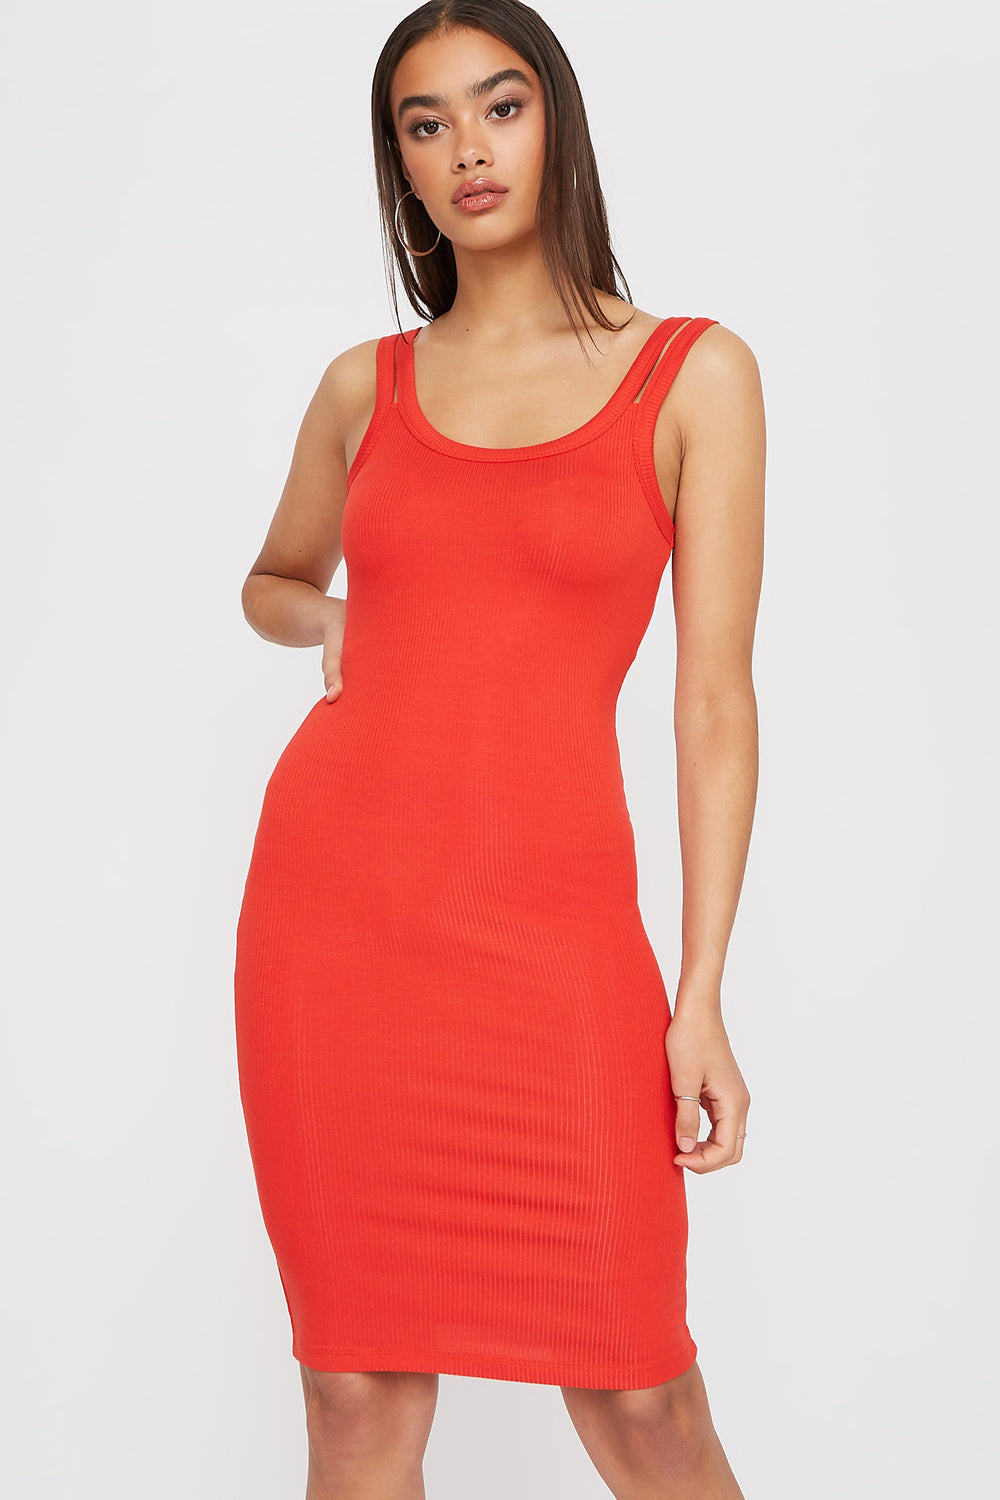 Double Strap Knit Sleeveless Mini Dress Coral